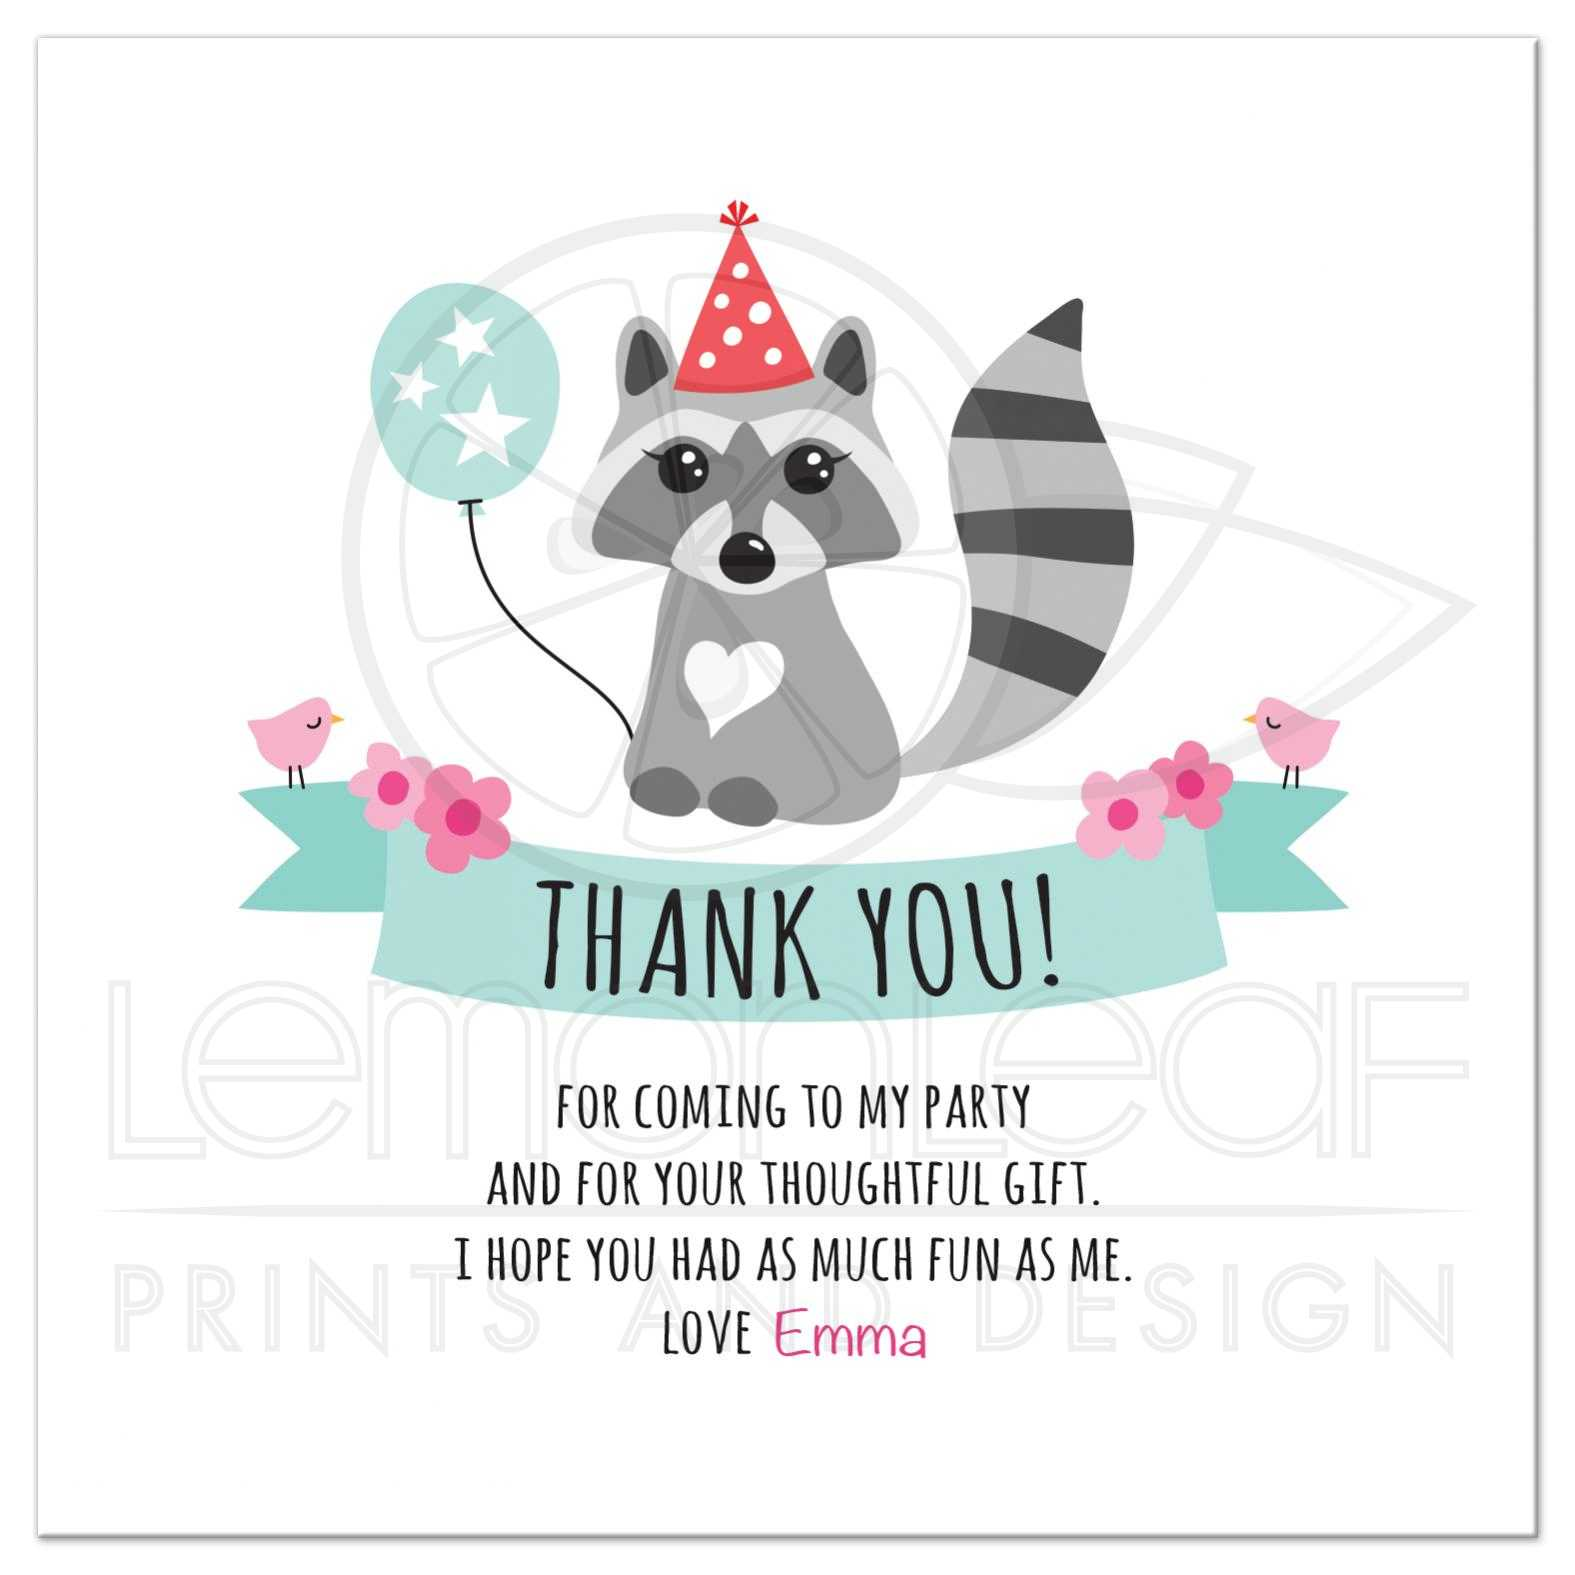 Cute raccoon with balloon and party hat, personalized text